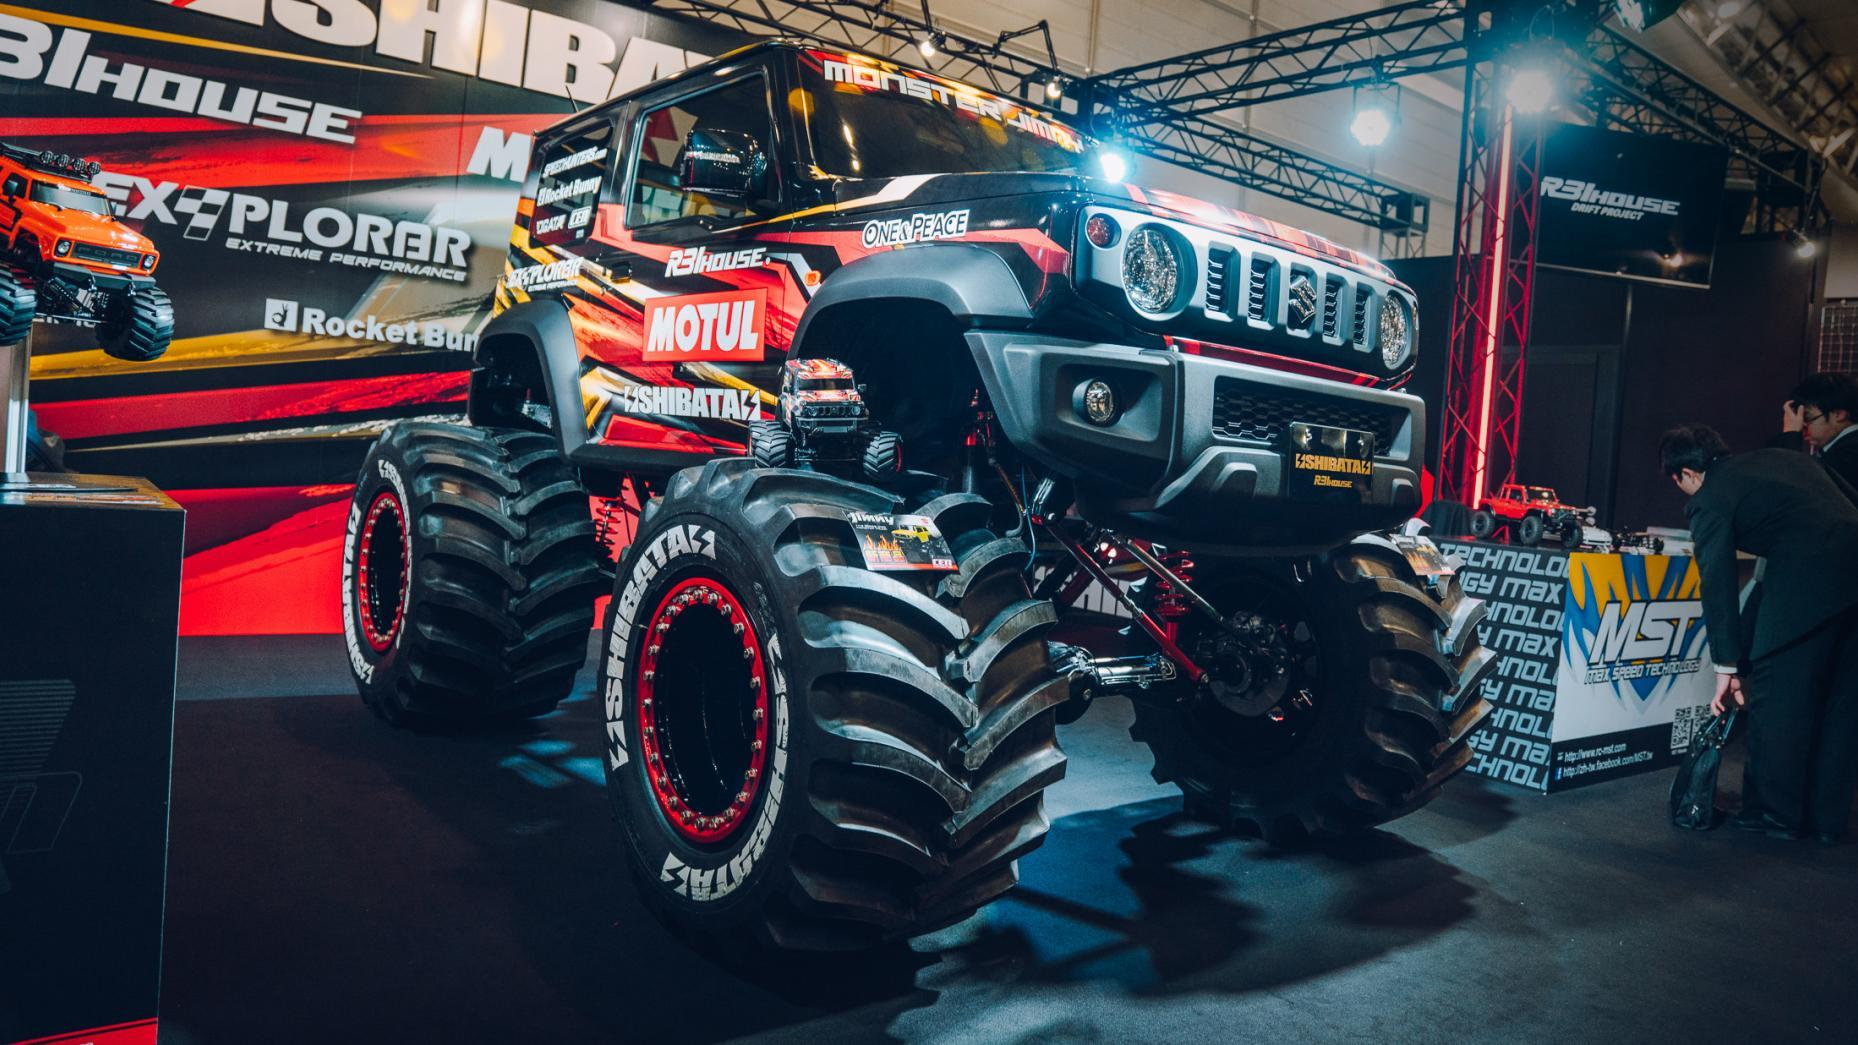 Suzuki Jimny Monster Truck